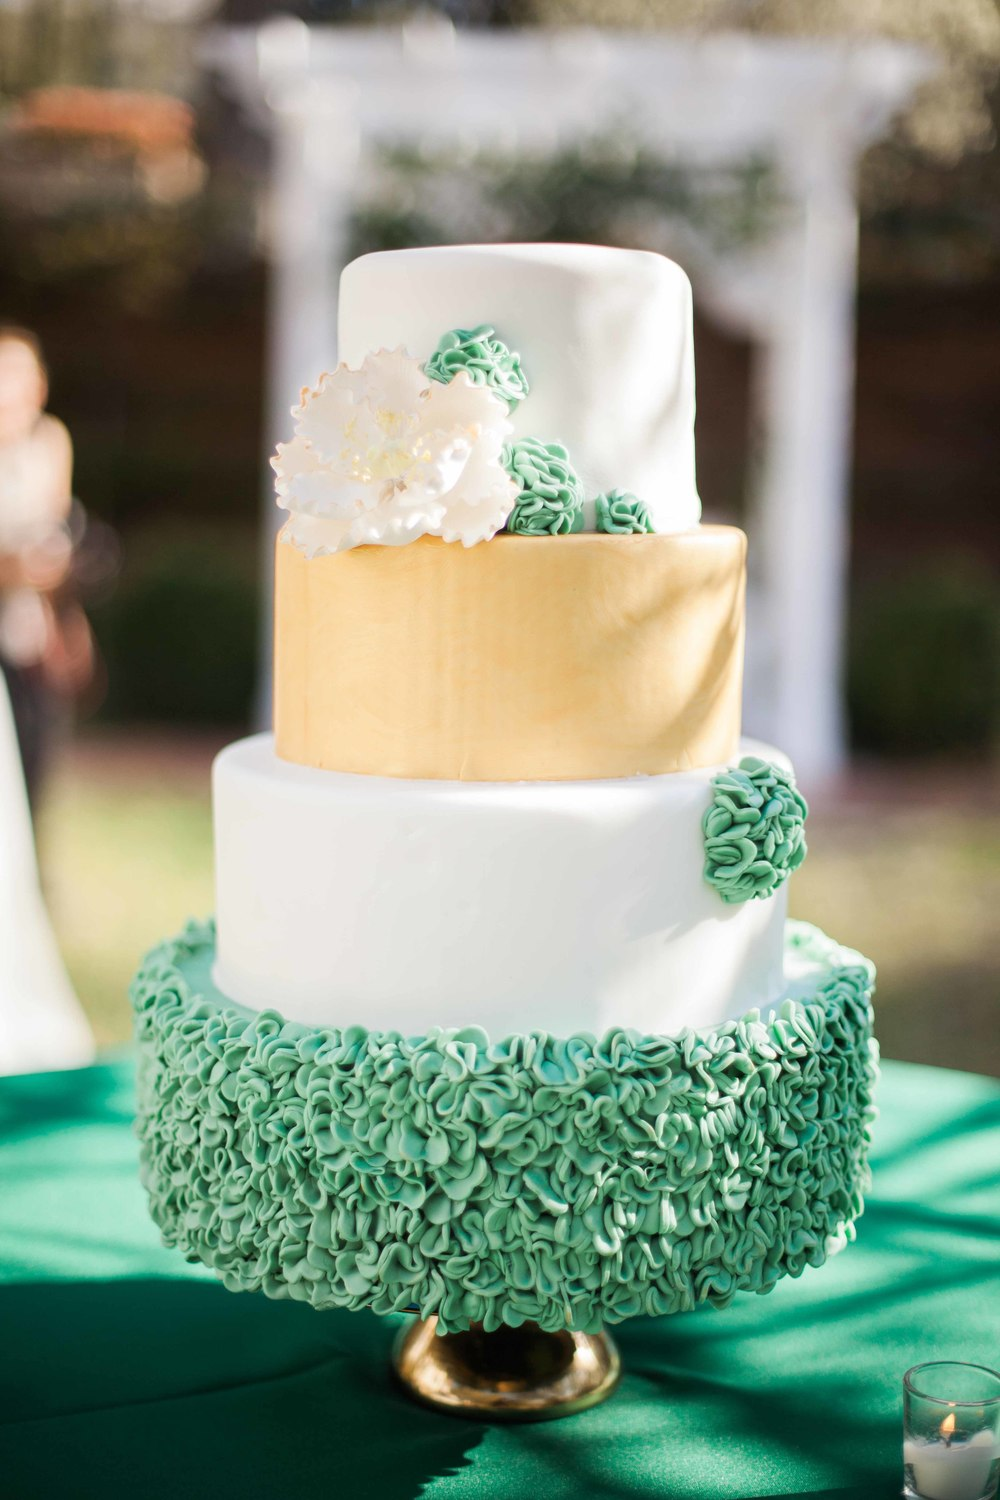 Four-tiered cake by Creative Cake Design at Burgwin-Wright House